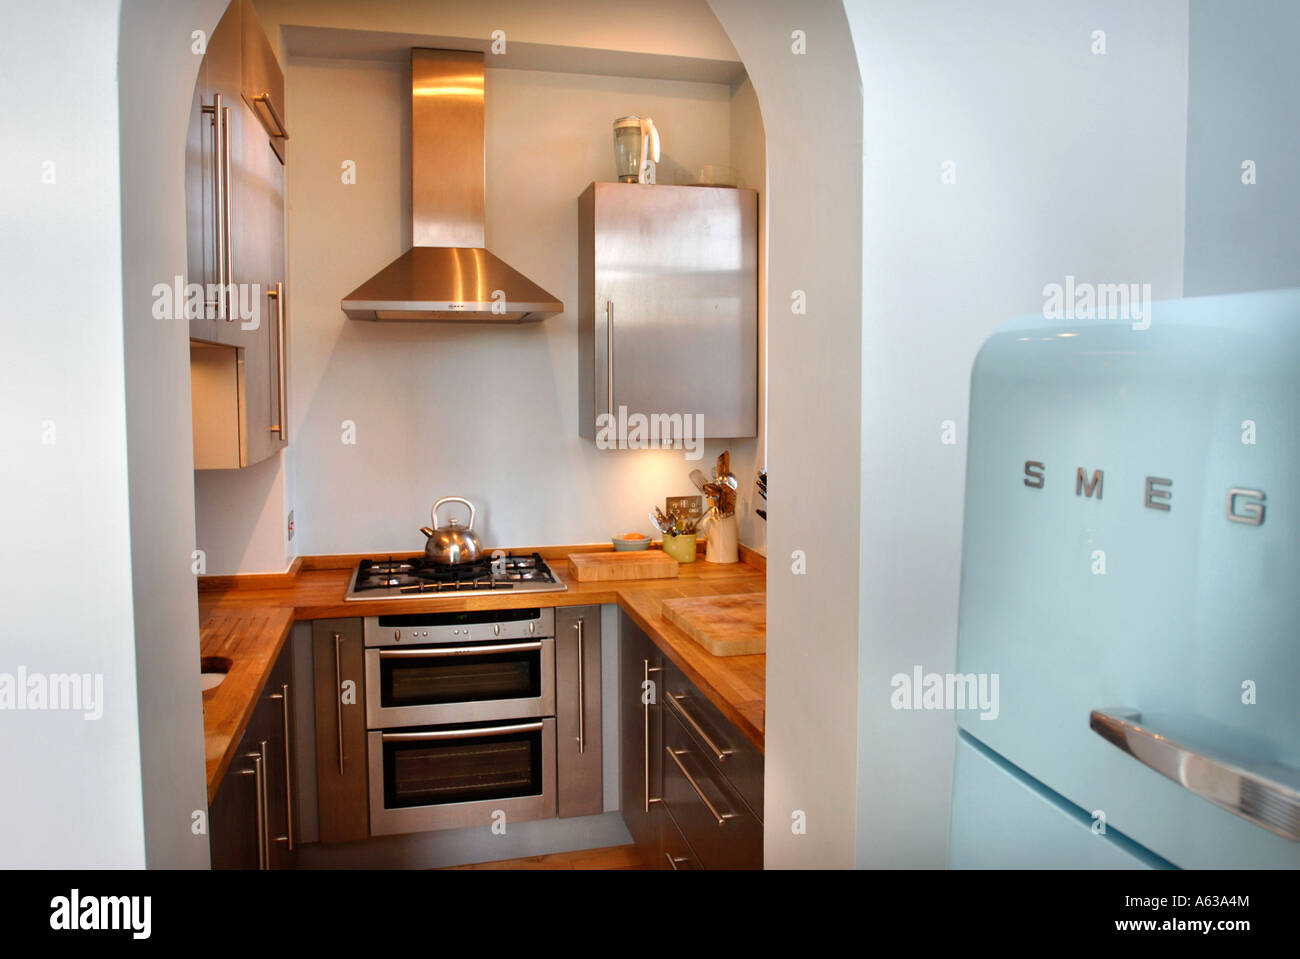 a small fitted kitchen with a smeg fridge uk stock image